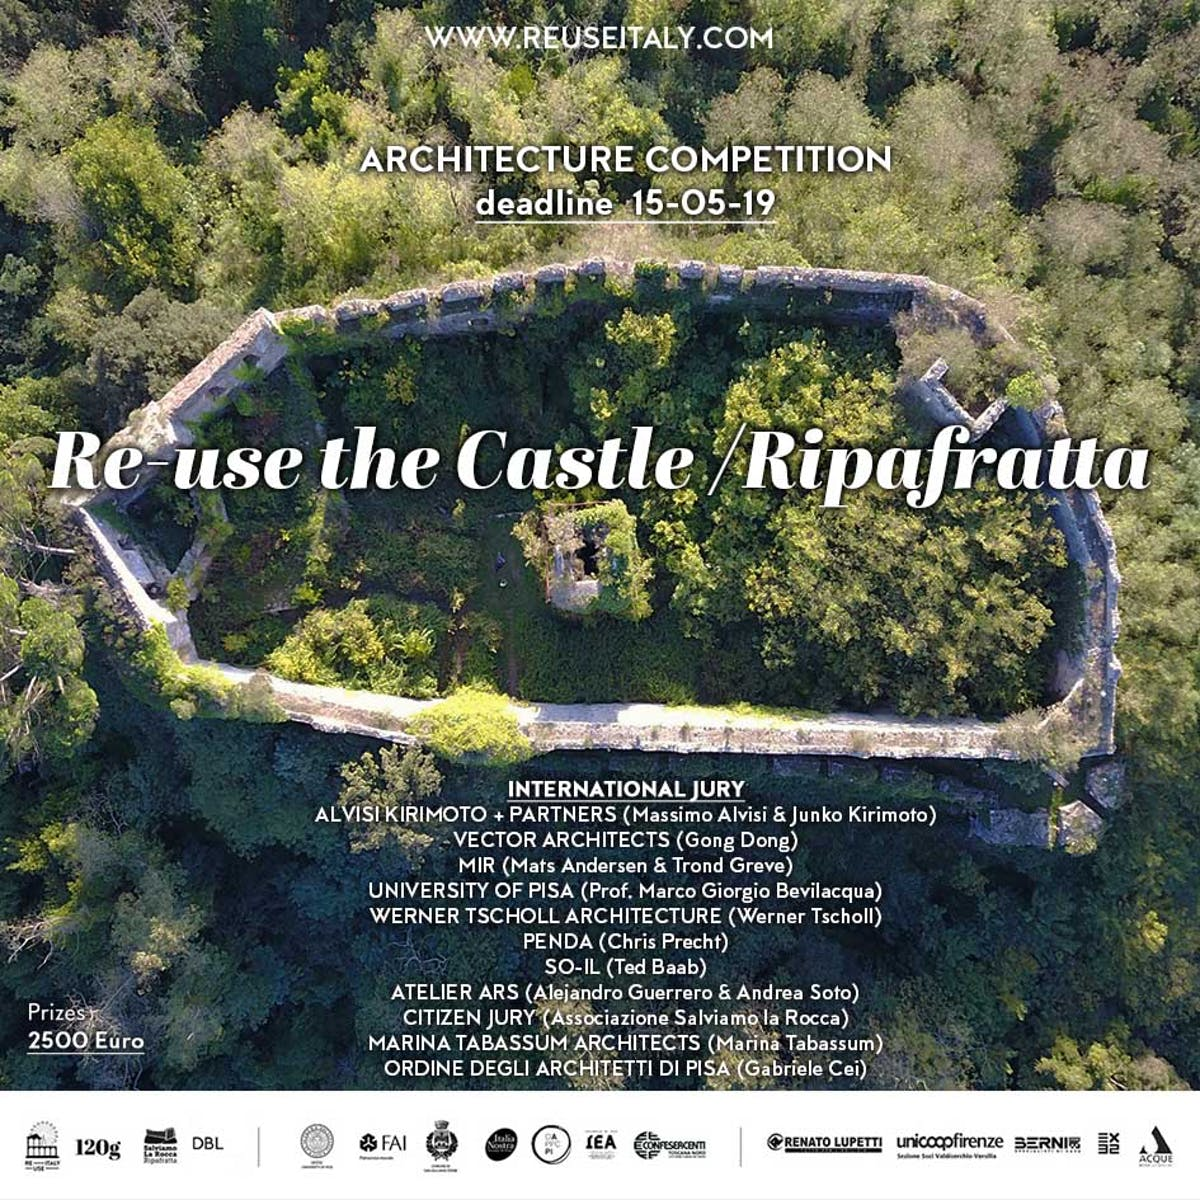 Re-Use the Castle/Ripafratta